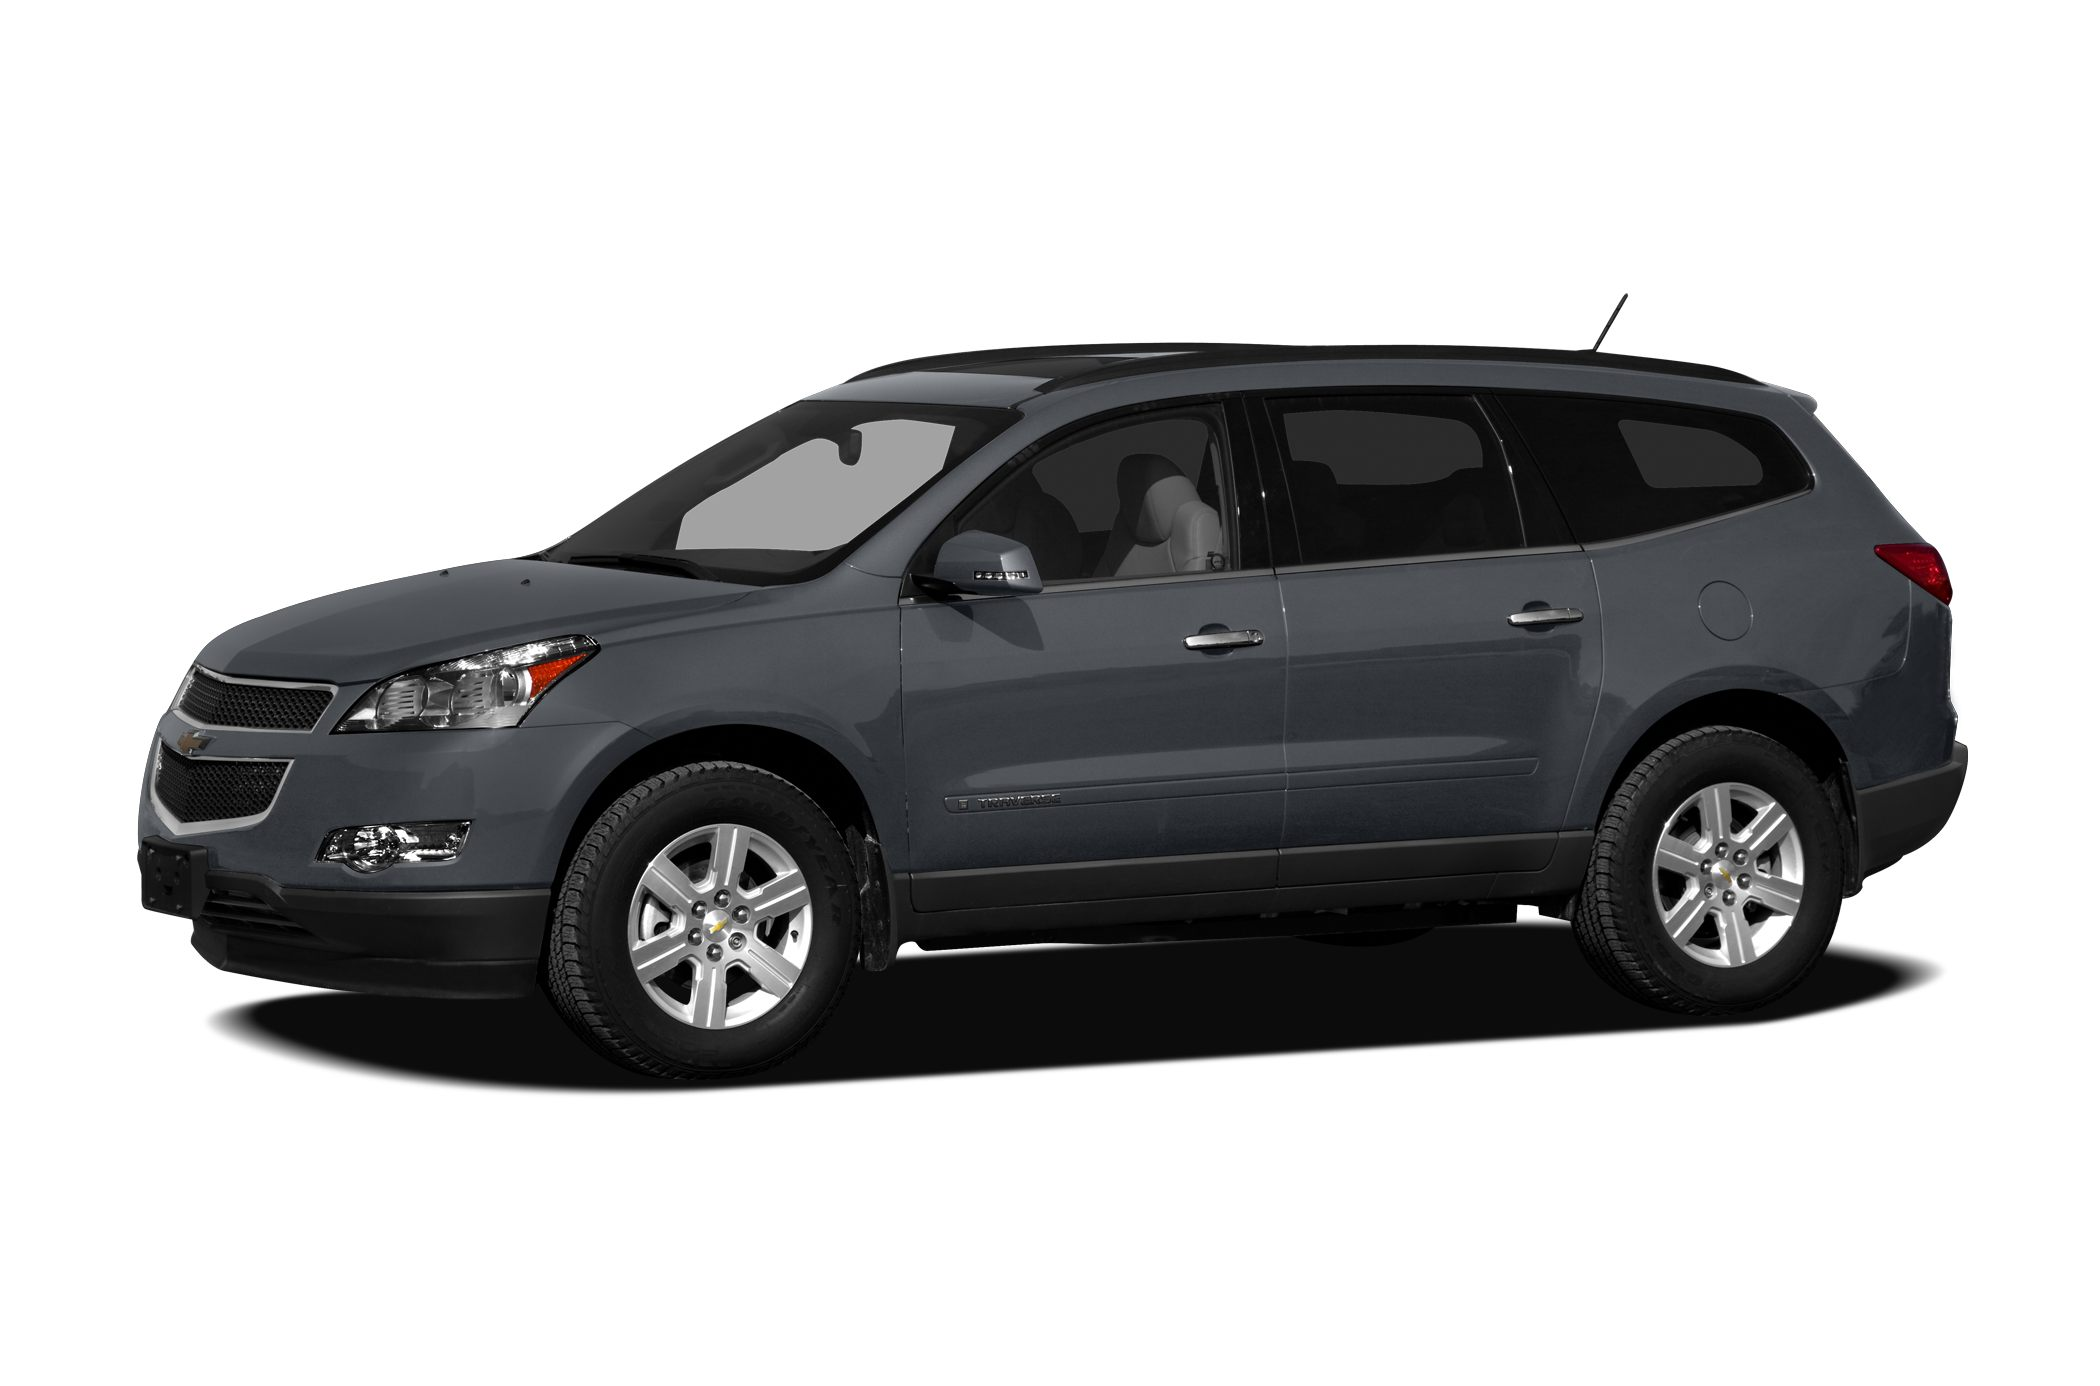 2010 Chevrolet Traverse LTZ SUV for sale in Bismarck for $16,990 with 105,912 miles.